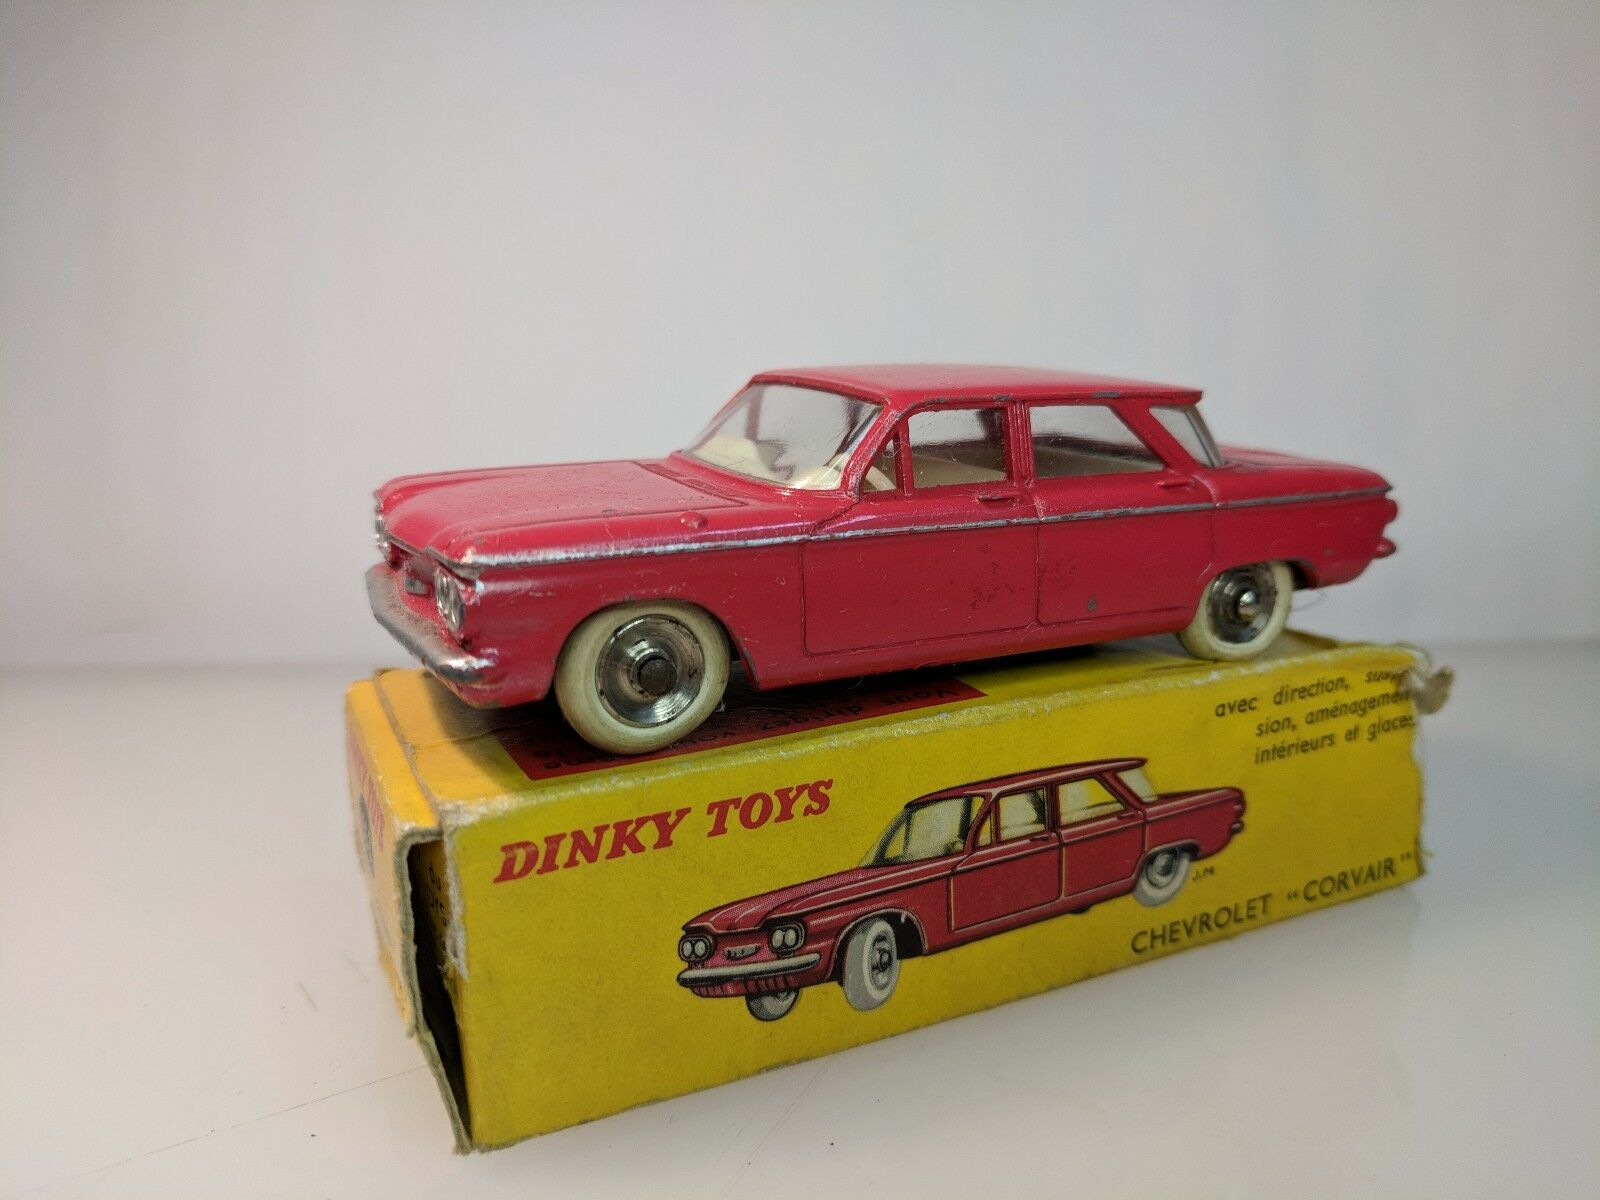 Vintage French Dinky Toys - 552 CHEVROLET CORVAIR France